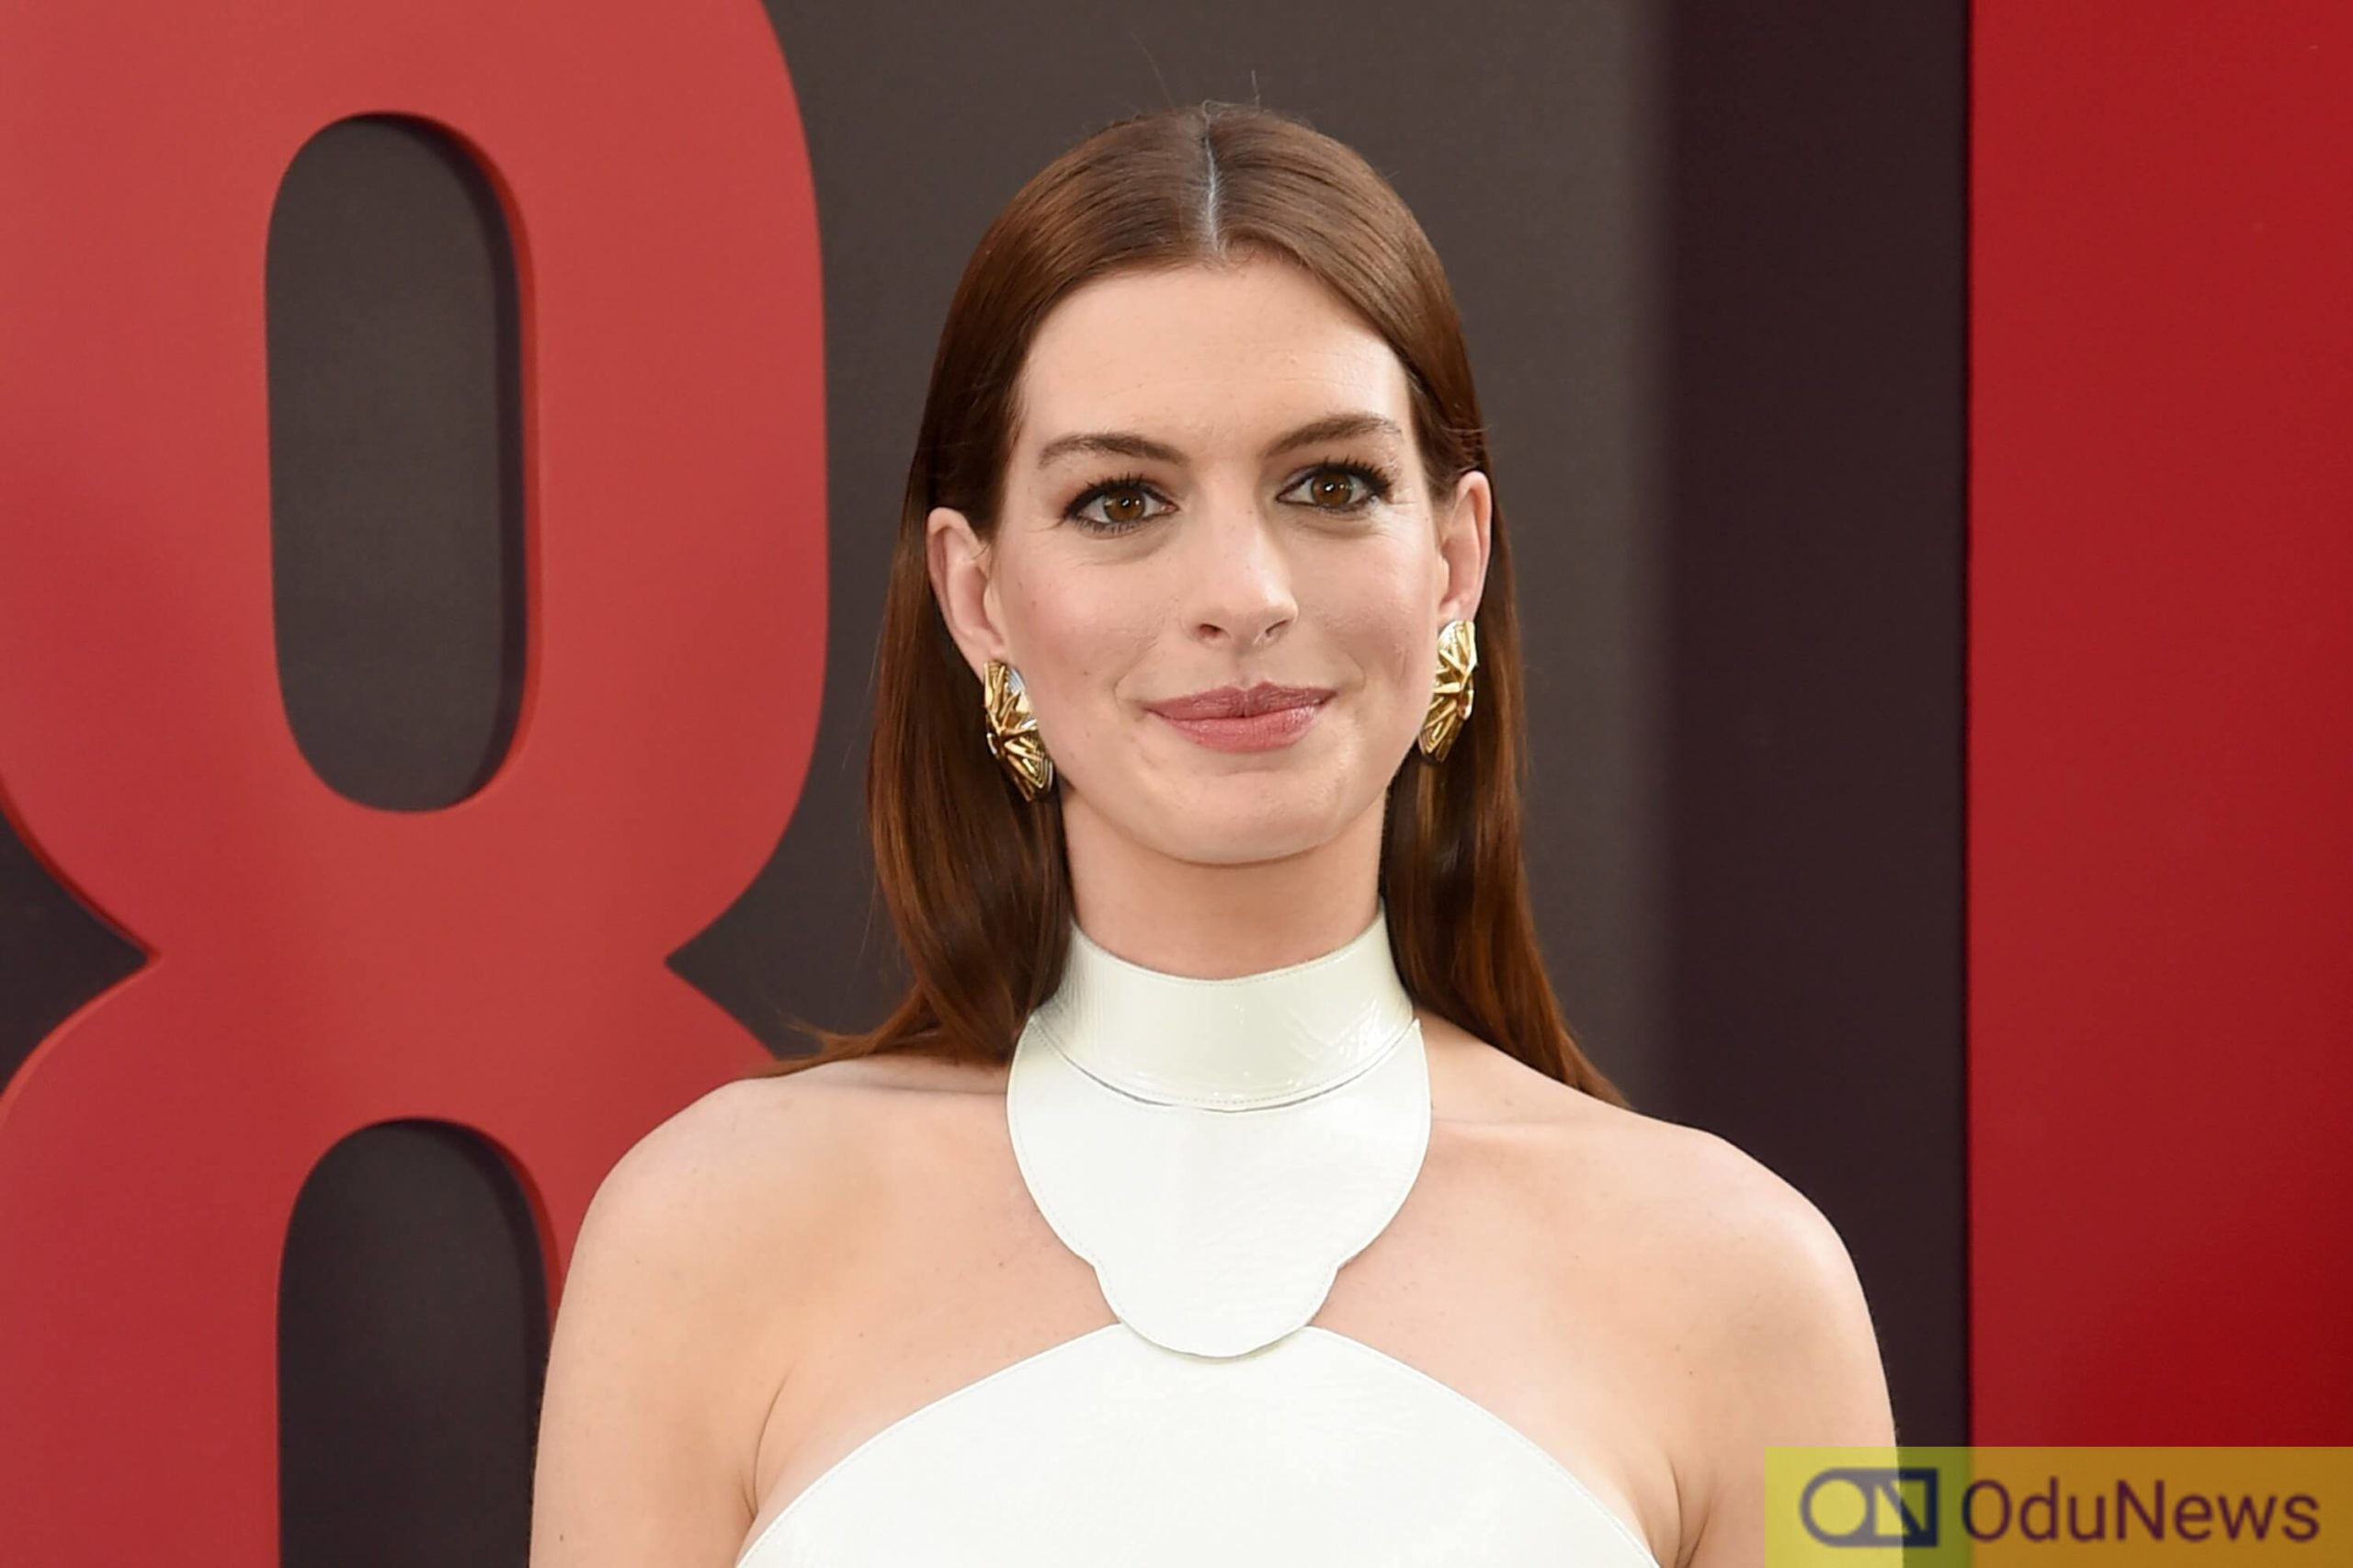 Anne Hathaway is a great actress but her talent can't save the film from its downward plunge